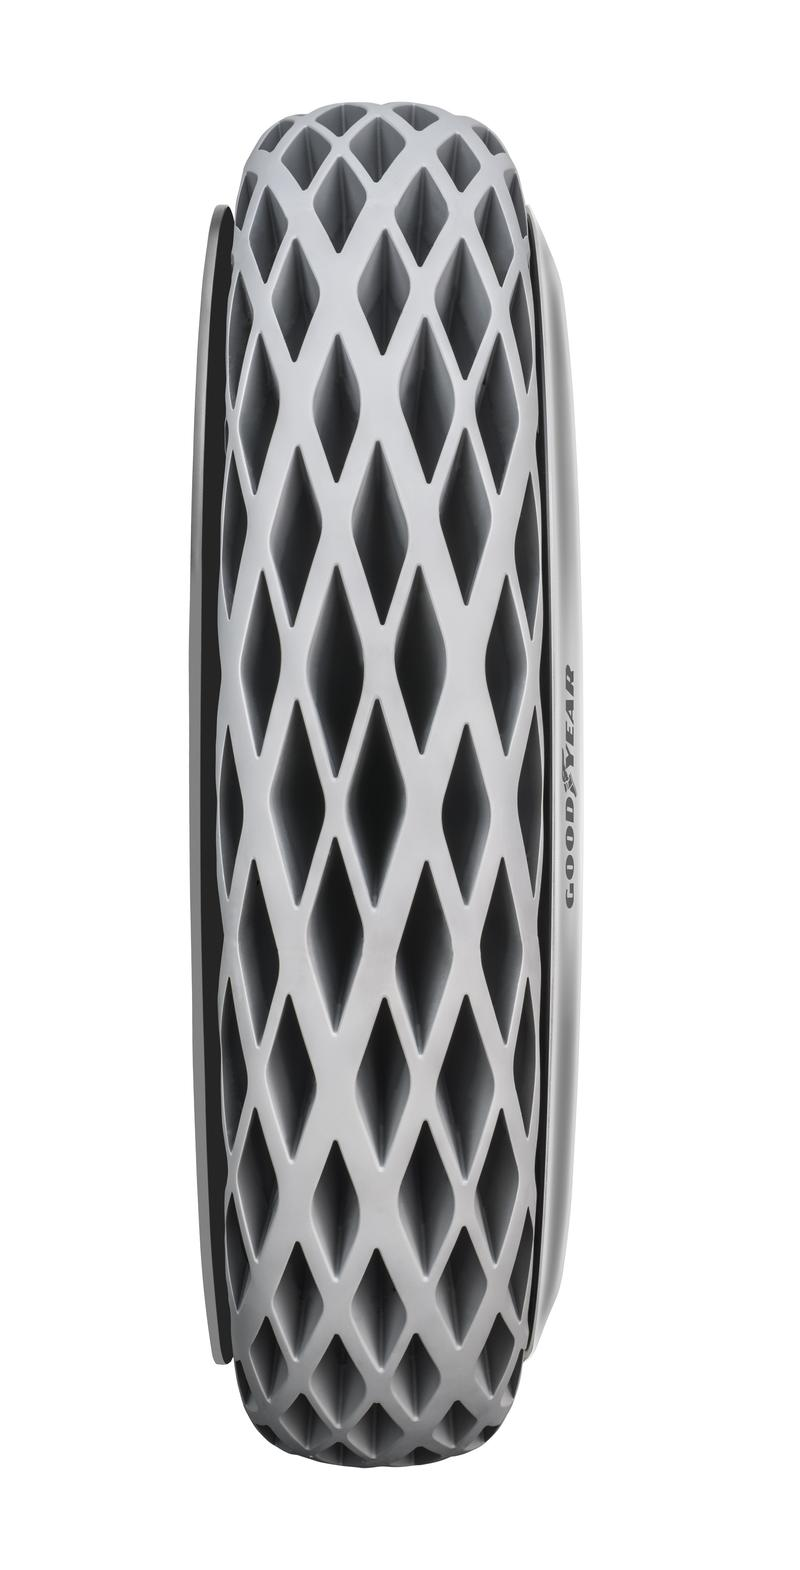 Meet the Goodyear Oxygene, the Tire That Makes Oxygen! - image 773082